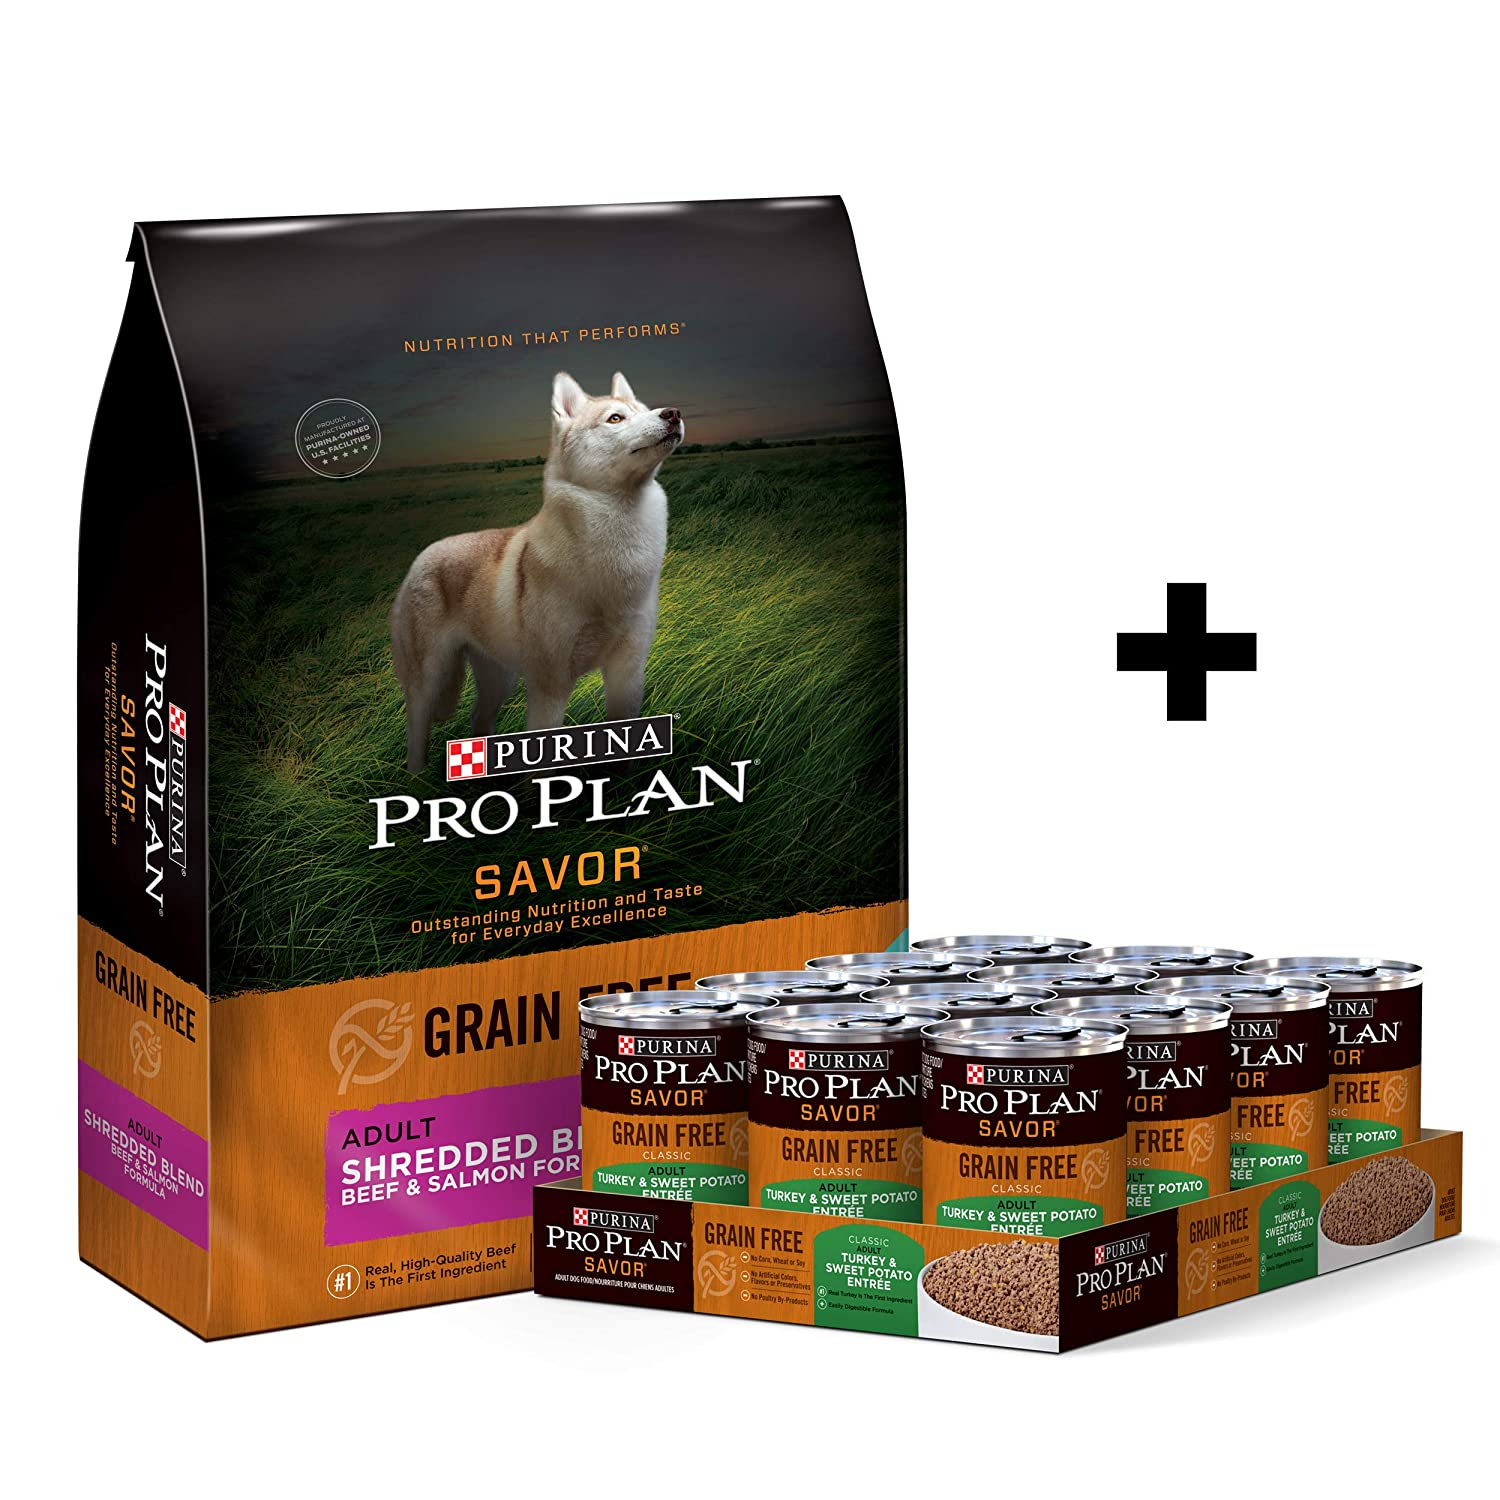 Purina Pro Plan SAVOR Grain-Free Shredded Blend Adult Dry Dog Food